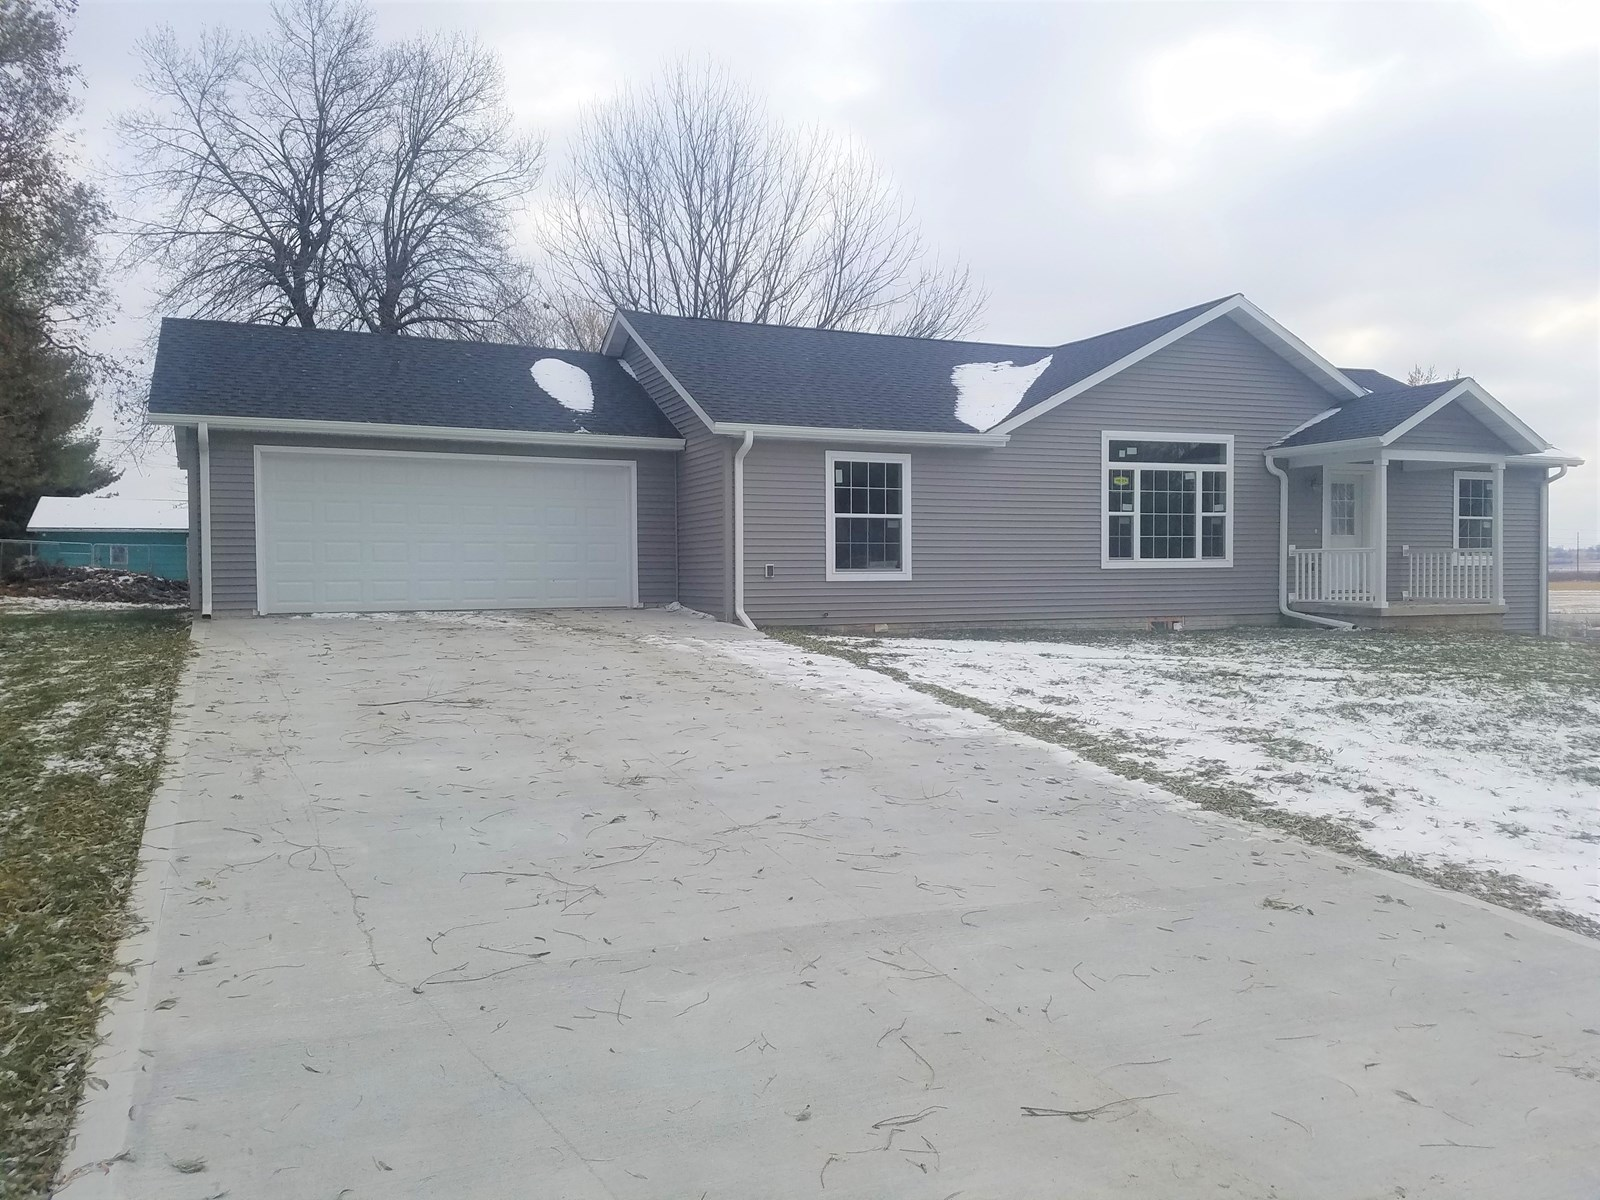 Brand New 3 Bedroom Home For Sale in Martensdale, IA